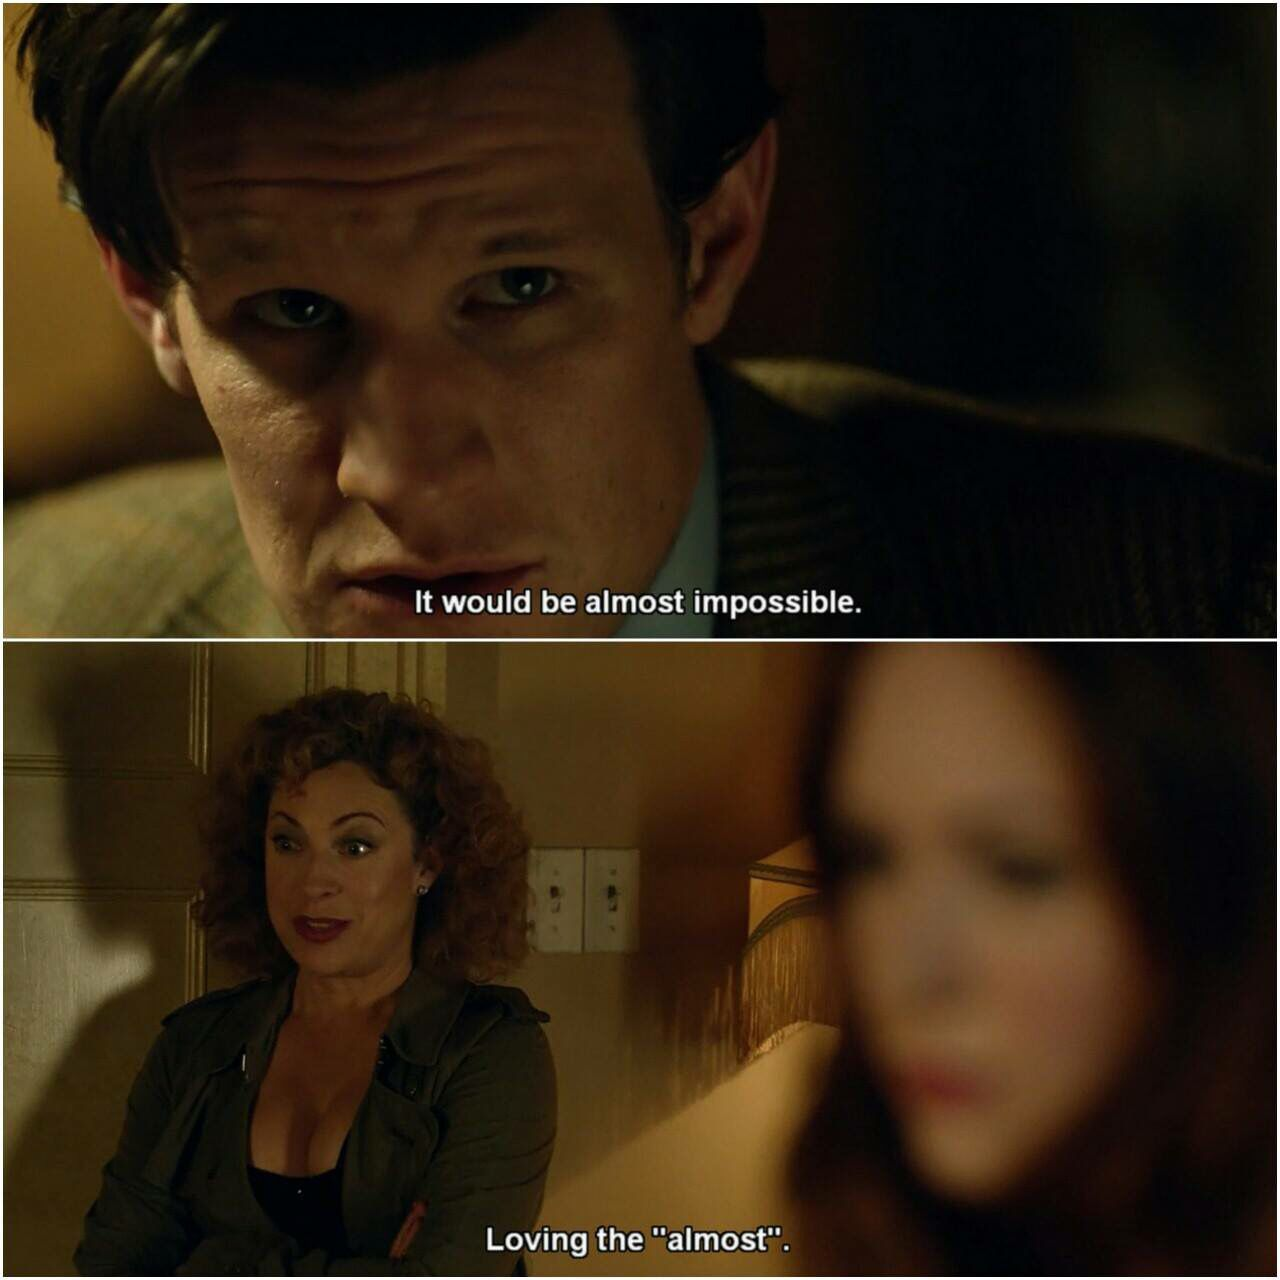 Pin by Cleanheart7 on Doctor Who | Doctor who, Doctor